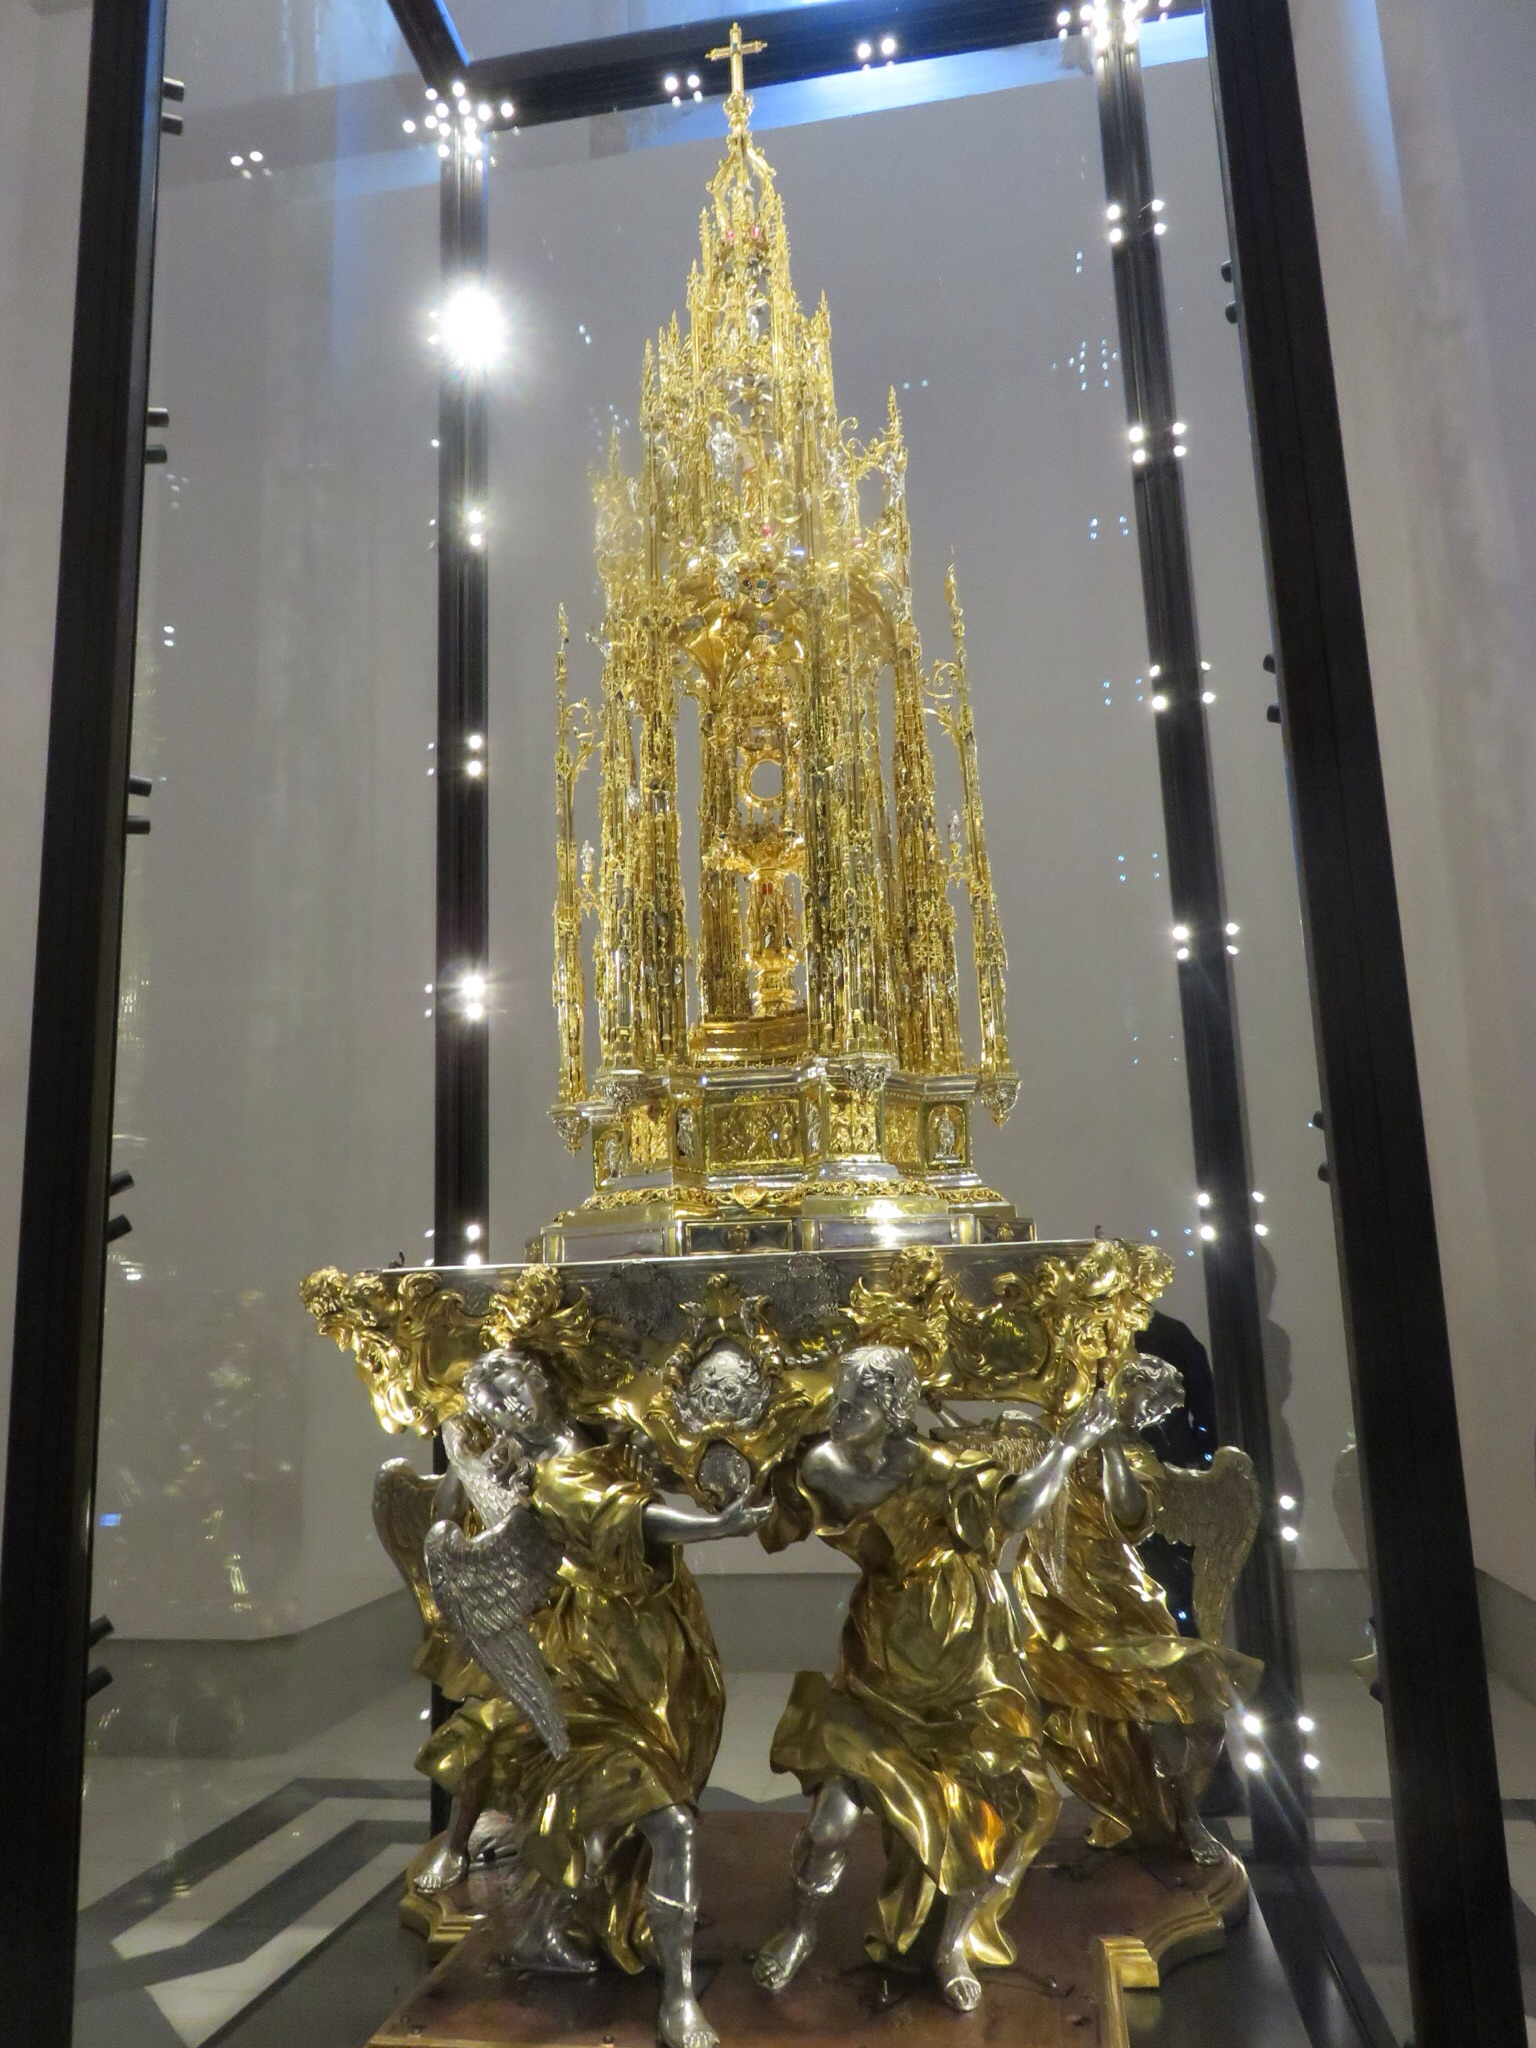 One of the objects from the Treasury - 10 feet high and over 400 pounds of gold plated silver with diamonds, emeralds and rubies, the piece on top 35 pounds of solid gold, built in 1517.